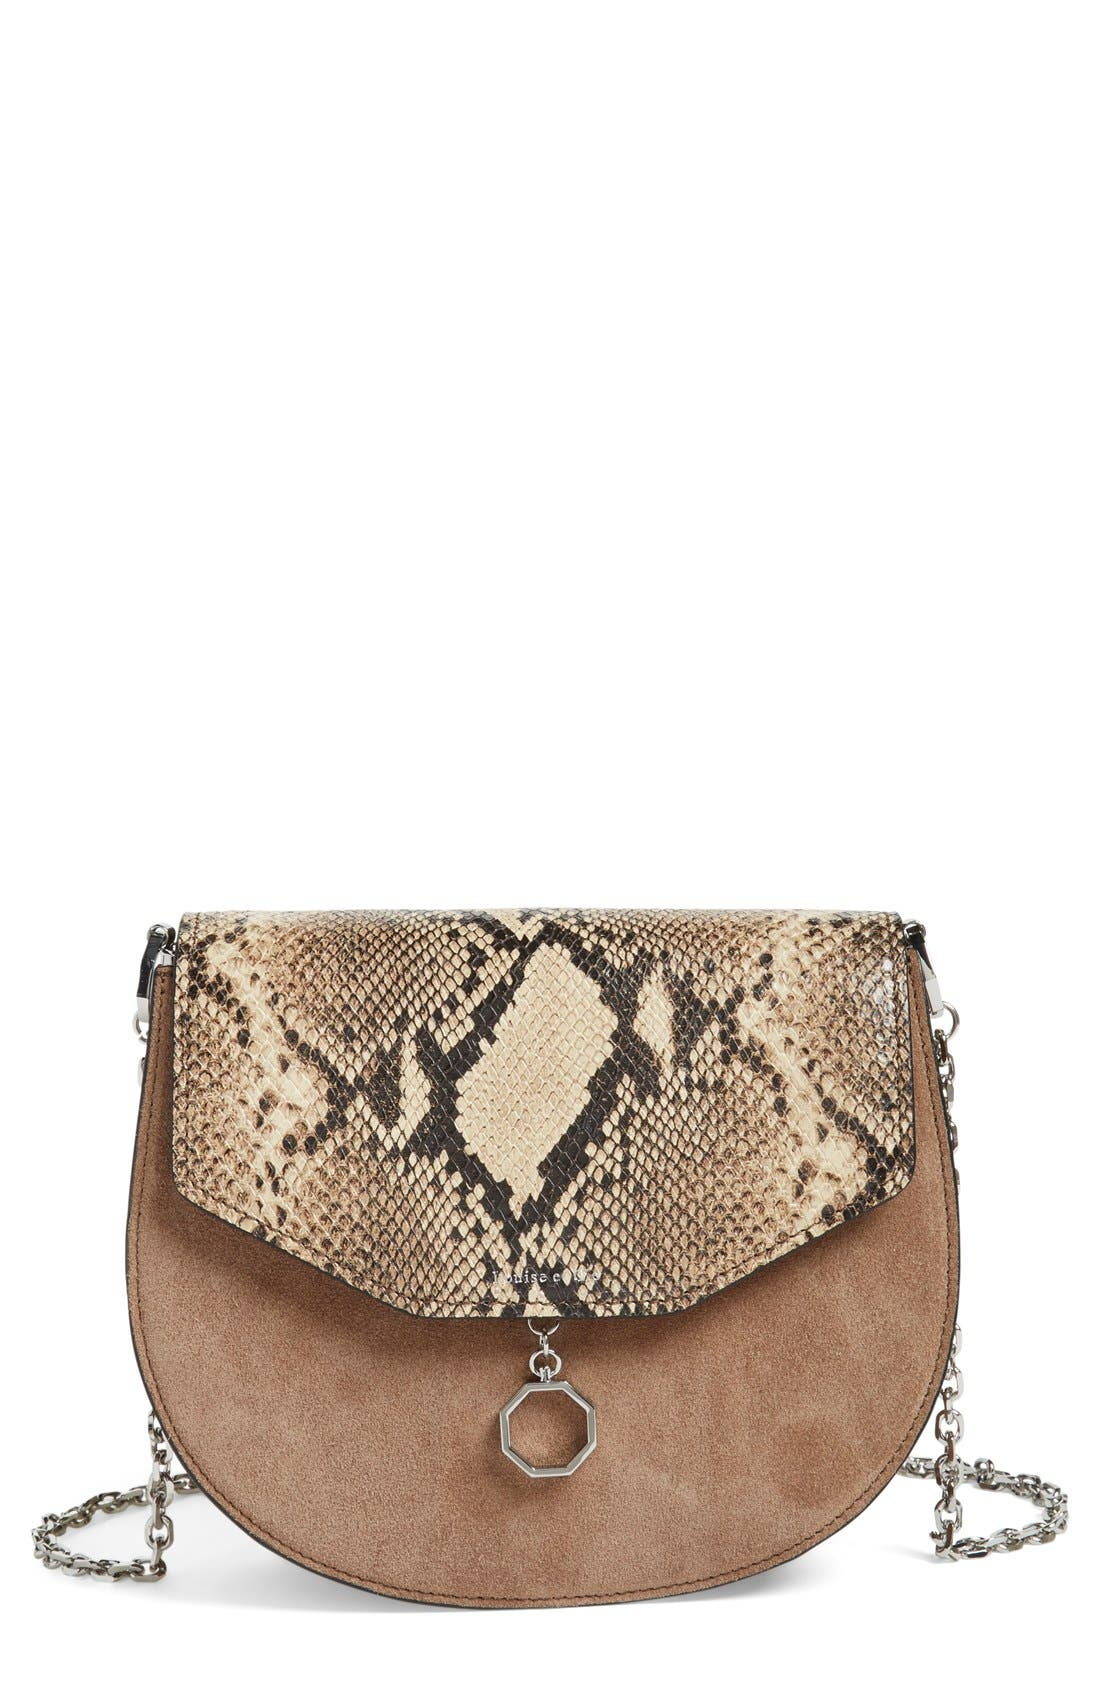 Main Image - Louise et Cie 'Jael' Suede & Leather Shoulder Bag